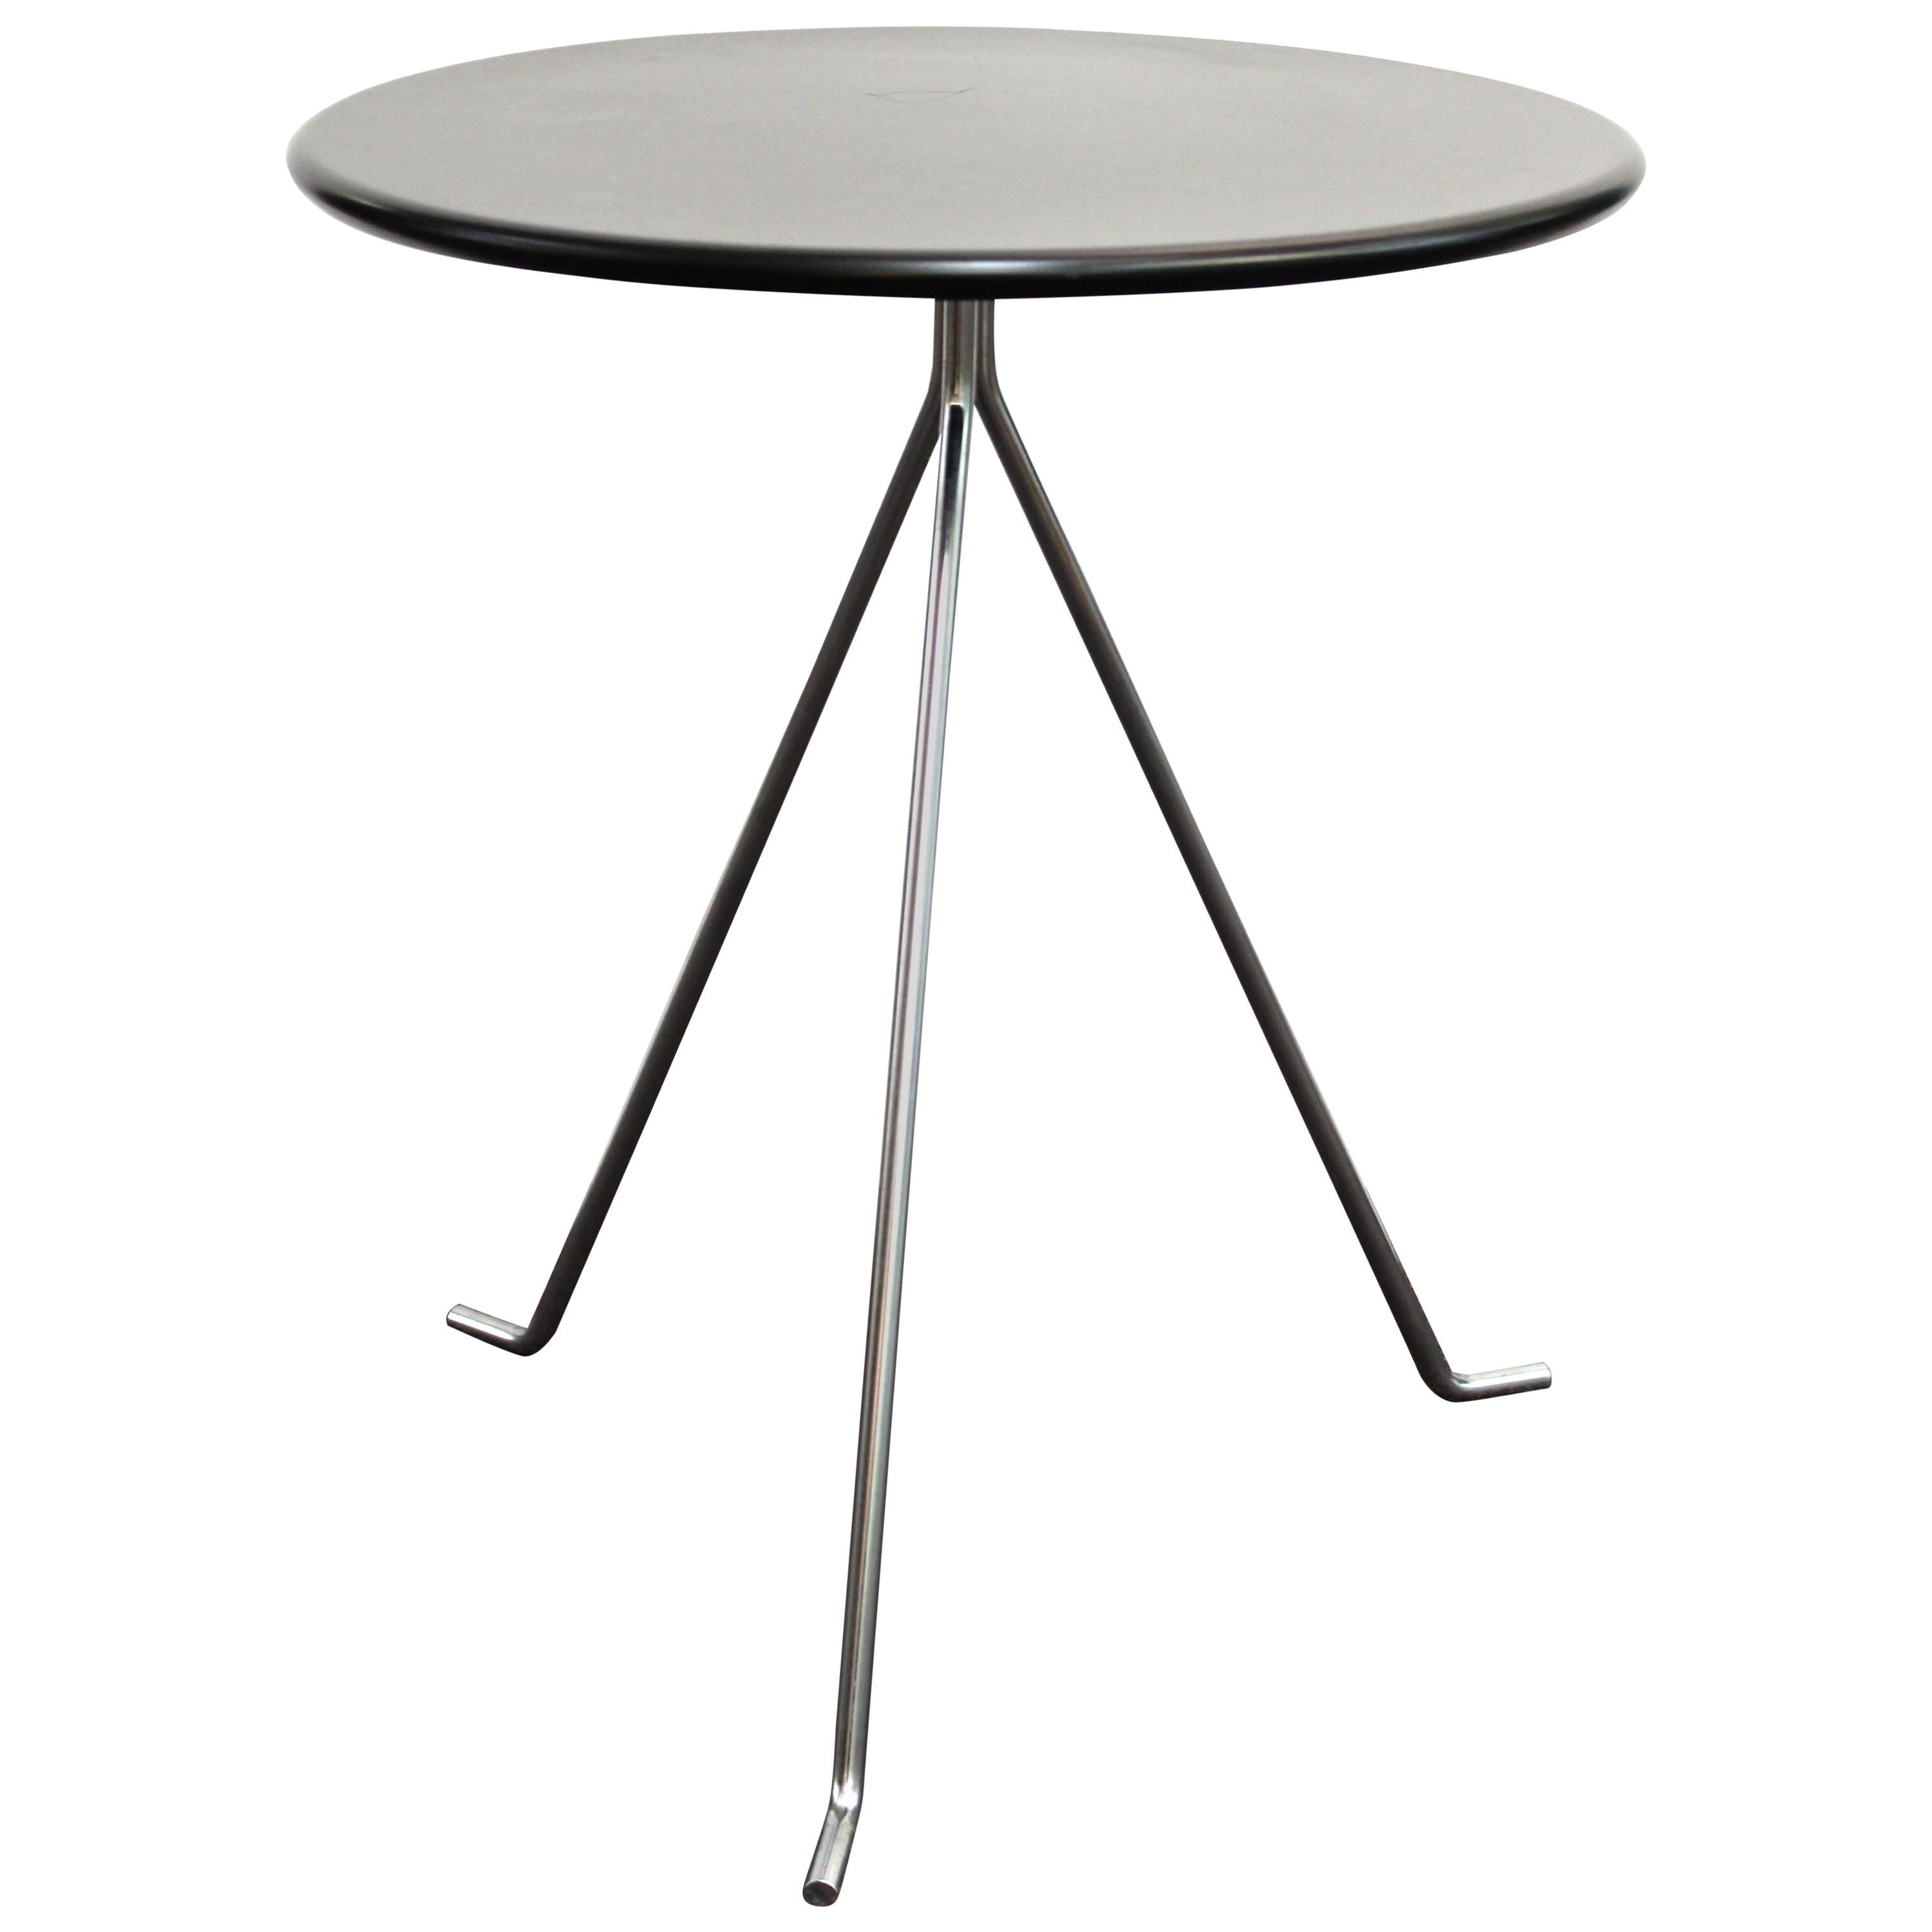 2b danish modern round metal side table for sale at 1stdibs